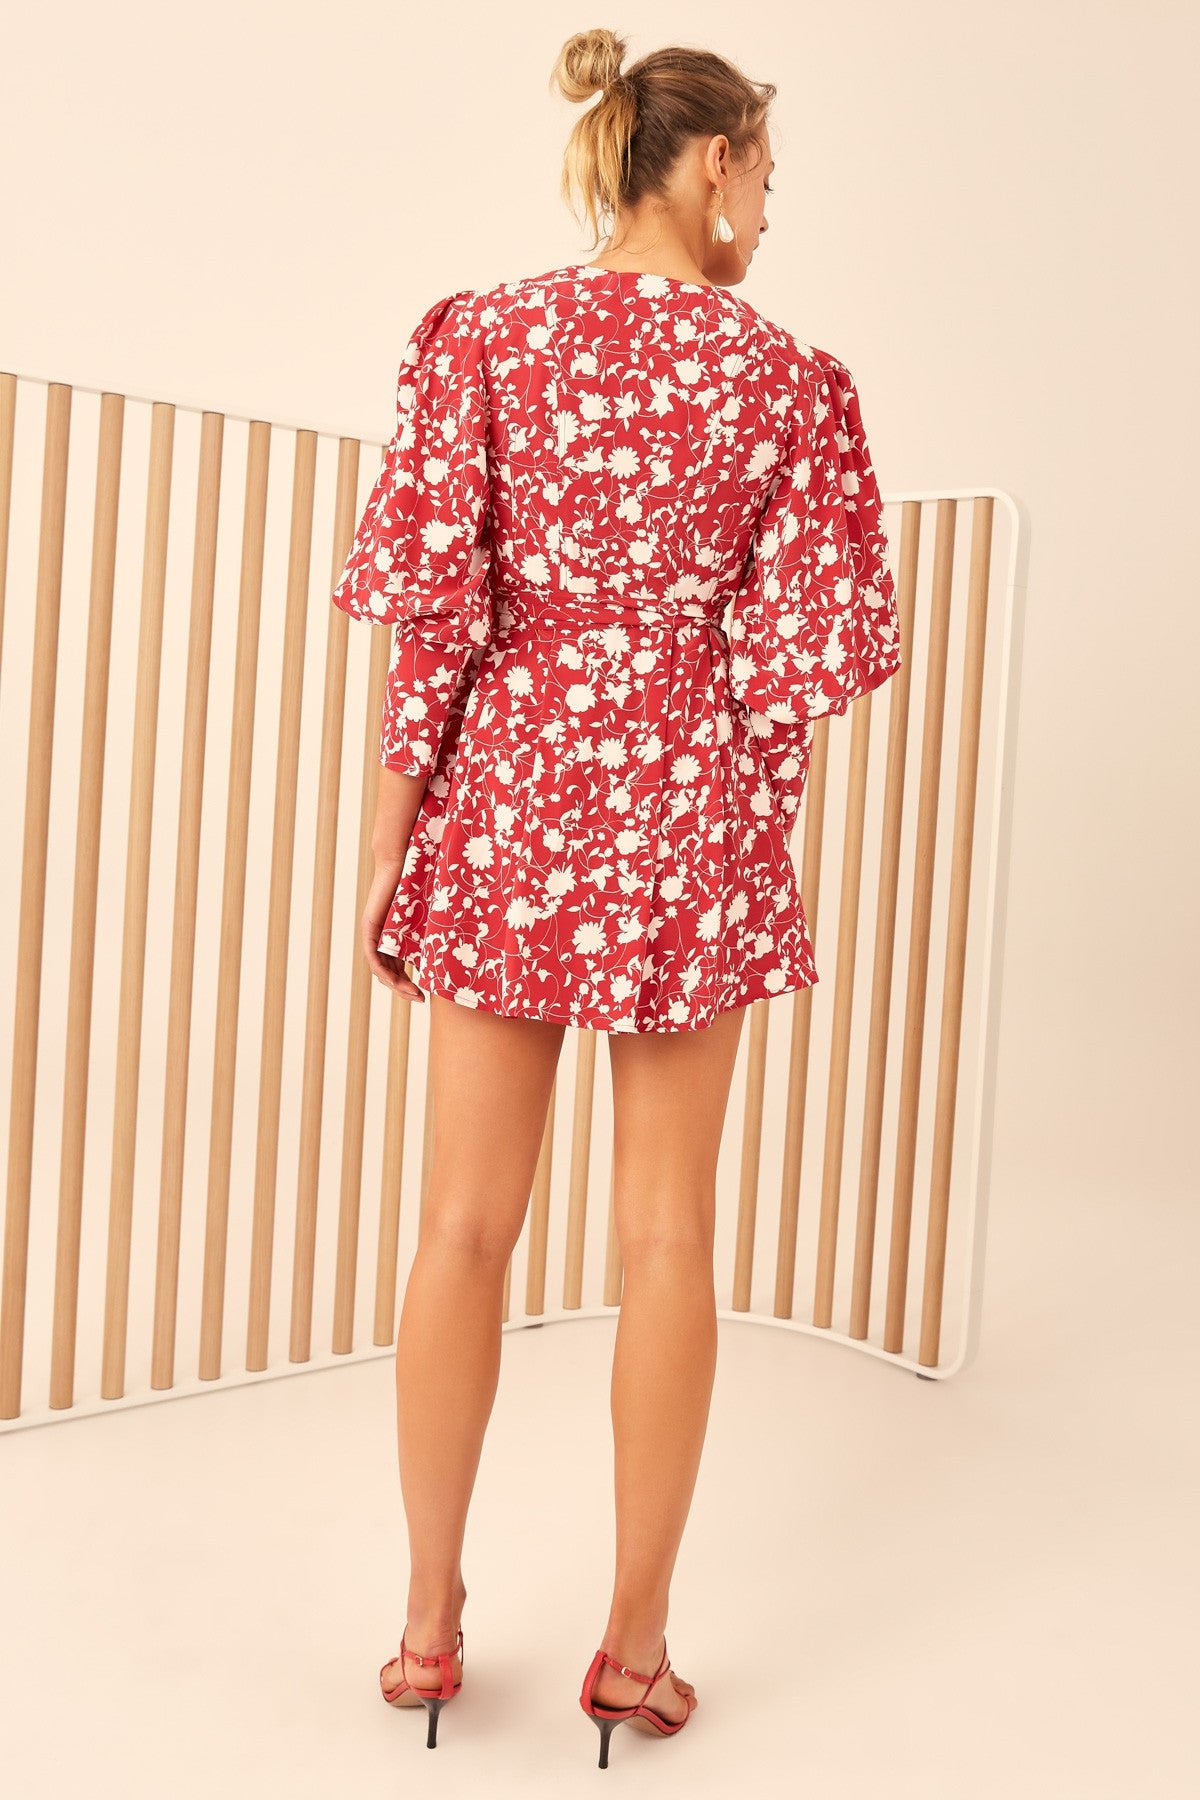 OPACITY DRESS chilli floral